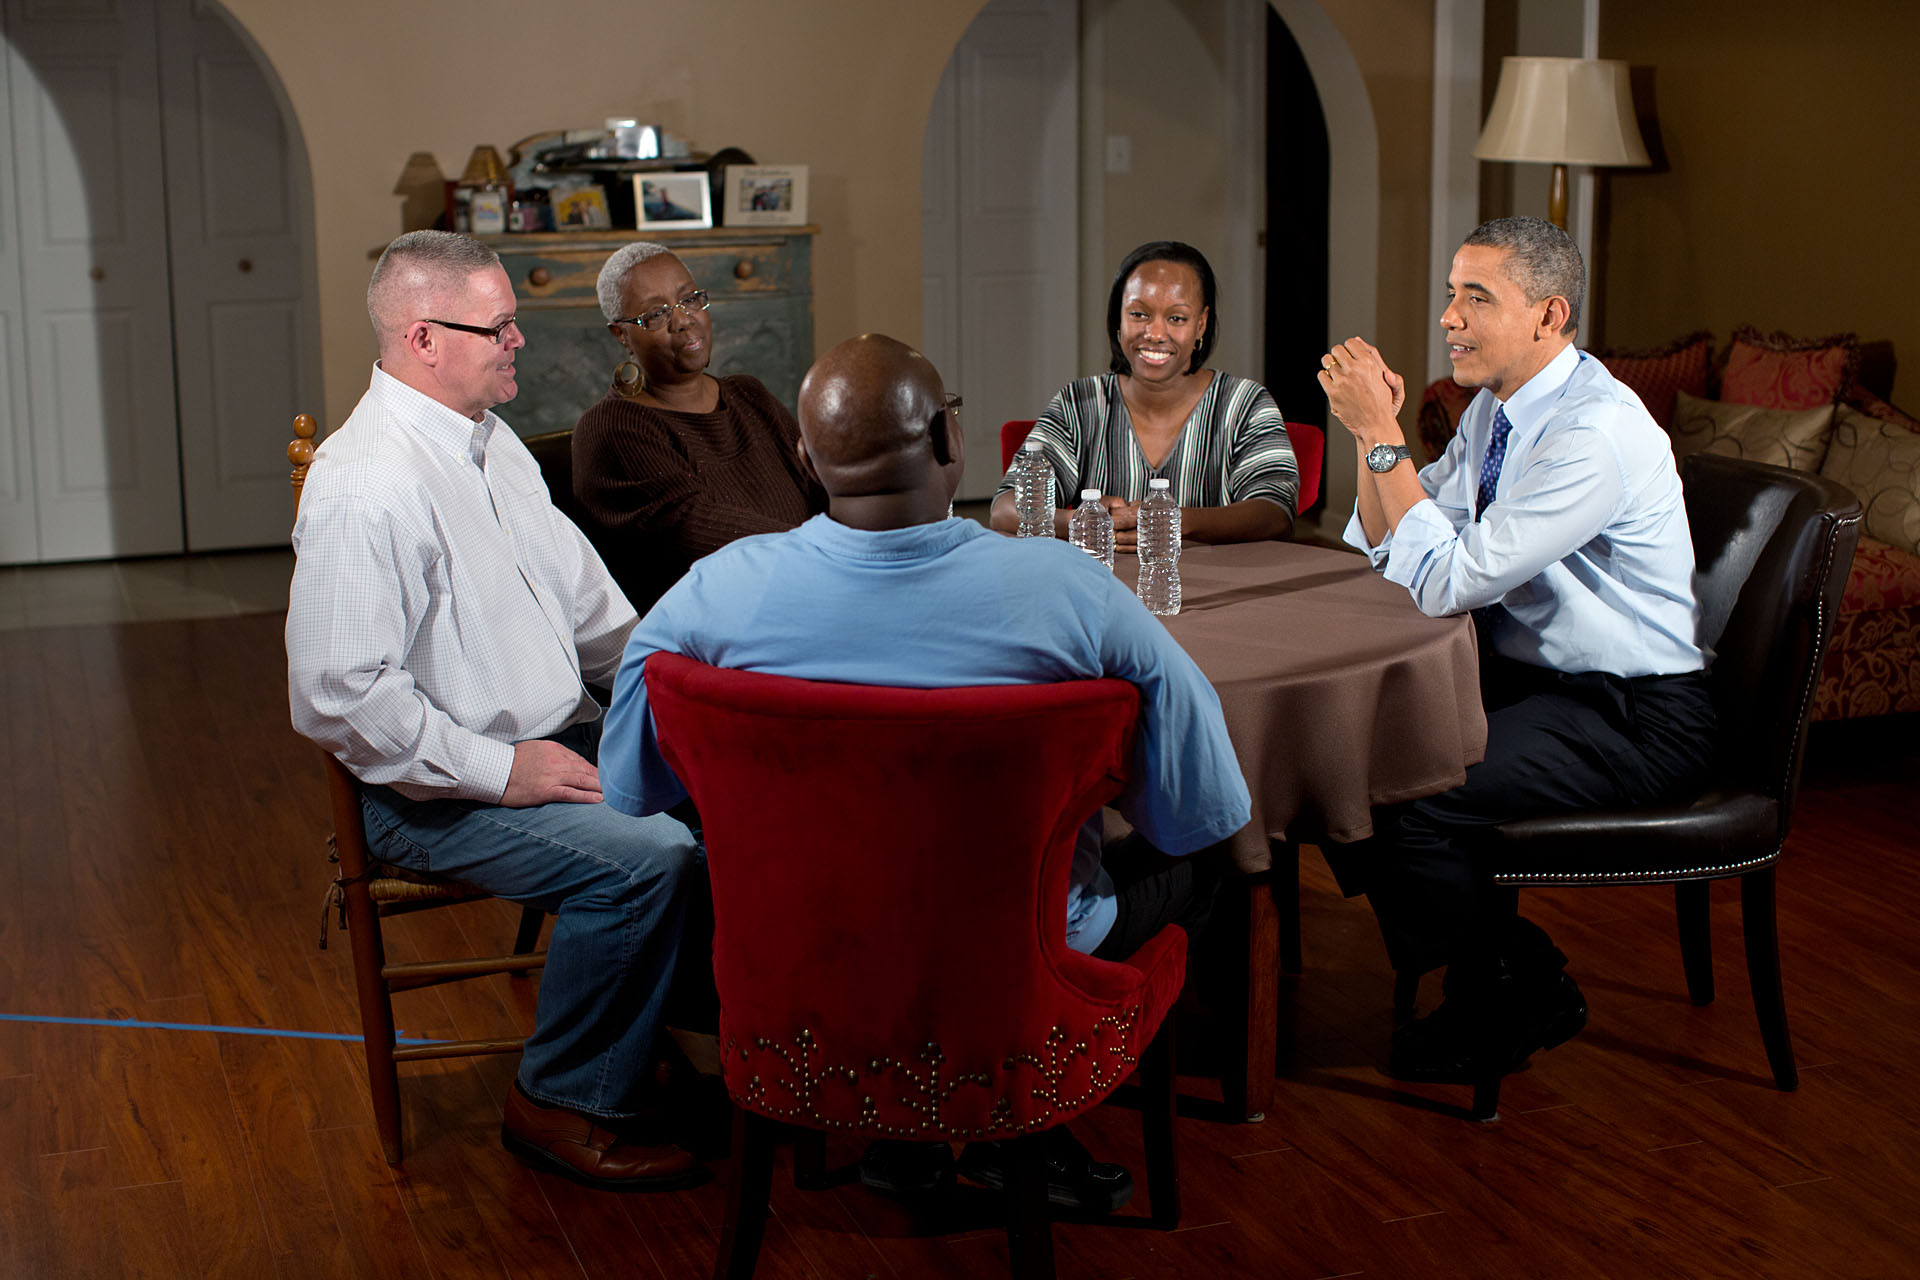 President Barack Obama meets with Tiffany and Richard Santana and Tiffany's parents, Velma and Jimmie Massenburg